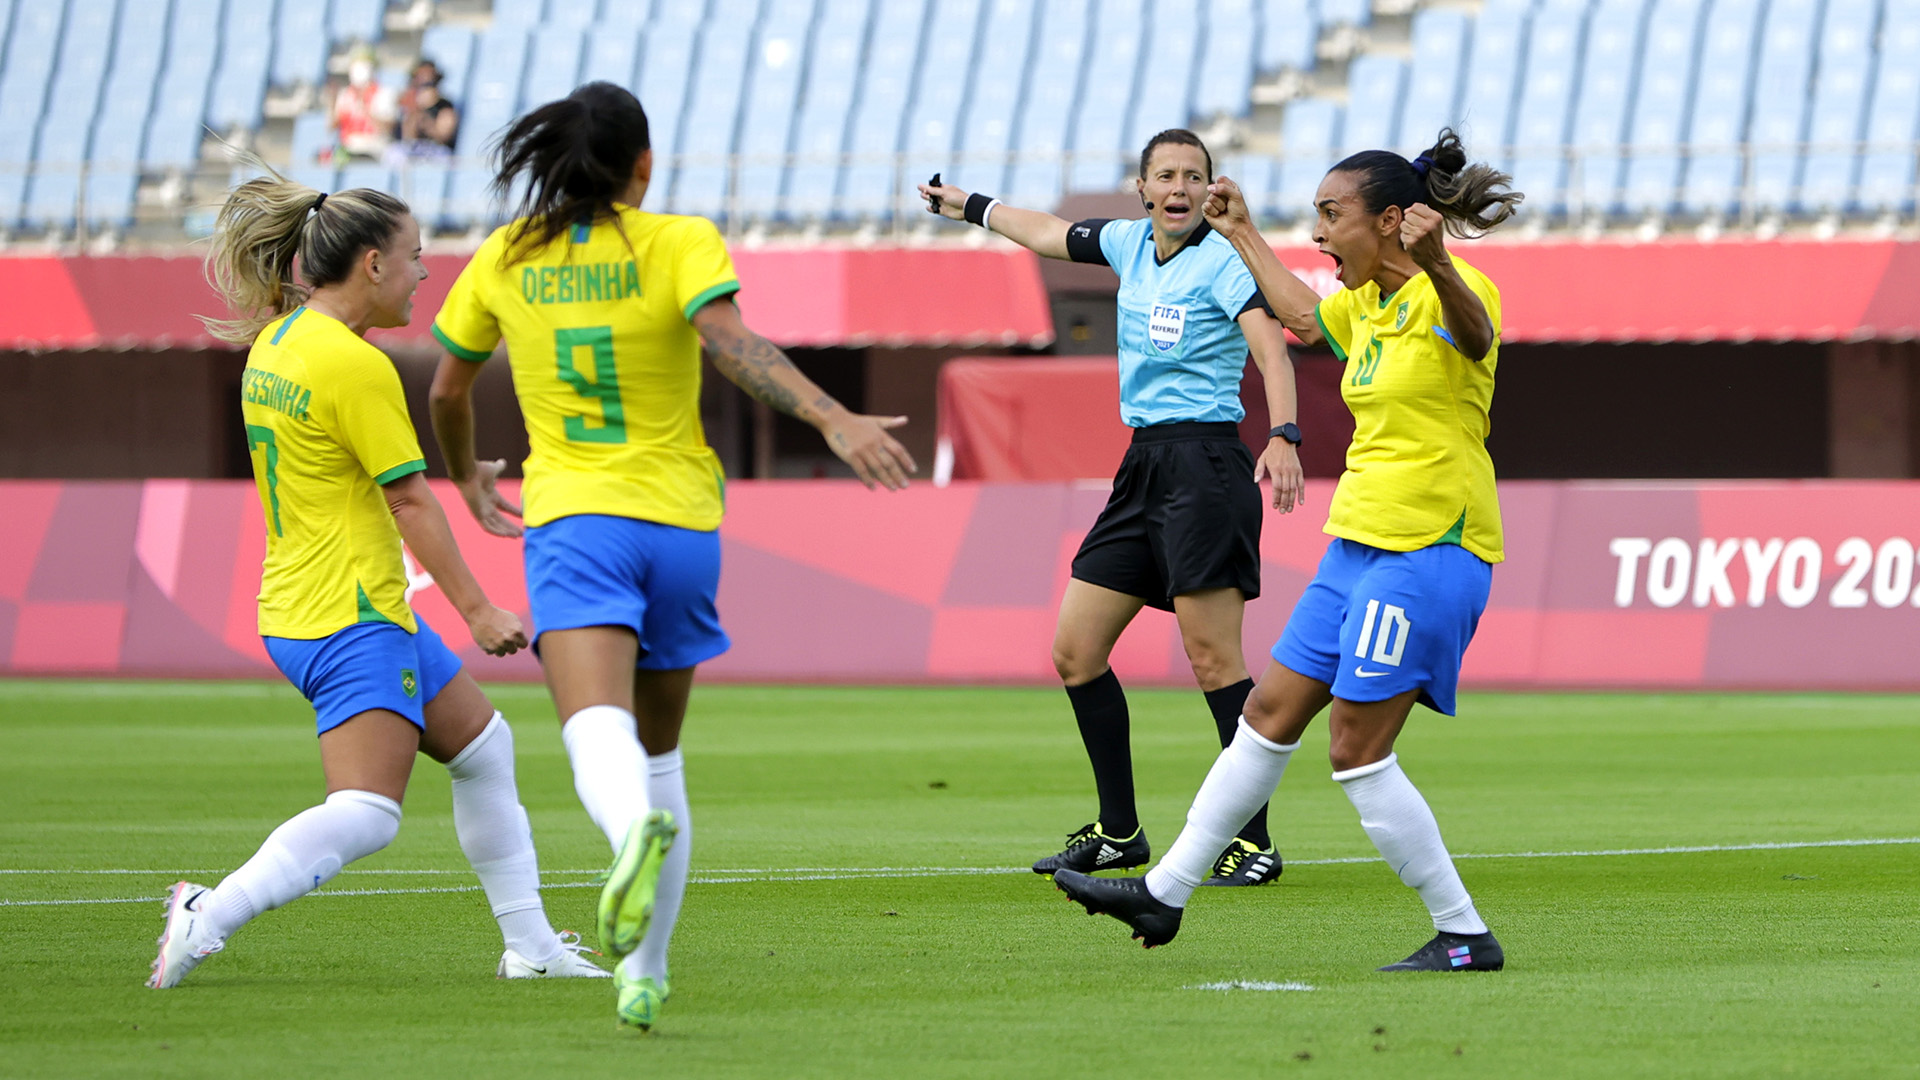 Tokyo Olympics 2020: Marta creates history by becoming first footballer to score in five consecutive Olympic games